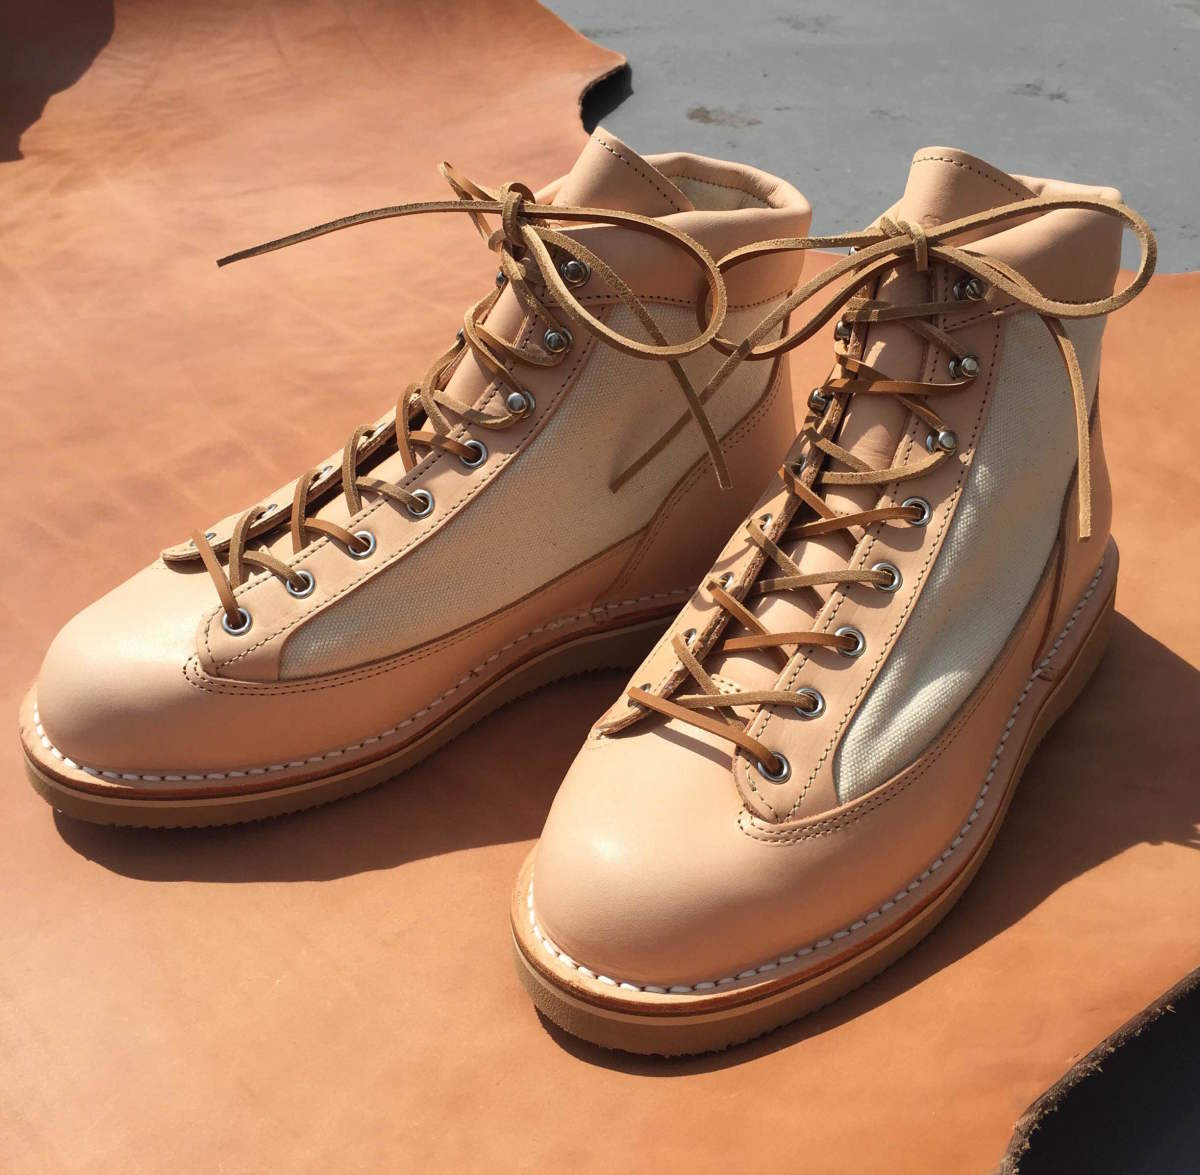 Danner Japan releases a pair of natural leather beauties with BLK PINE Workshop